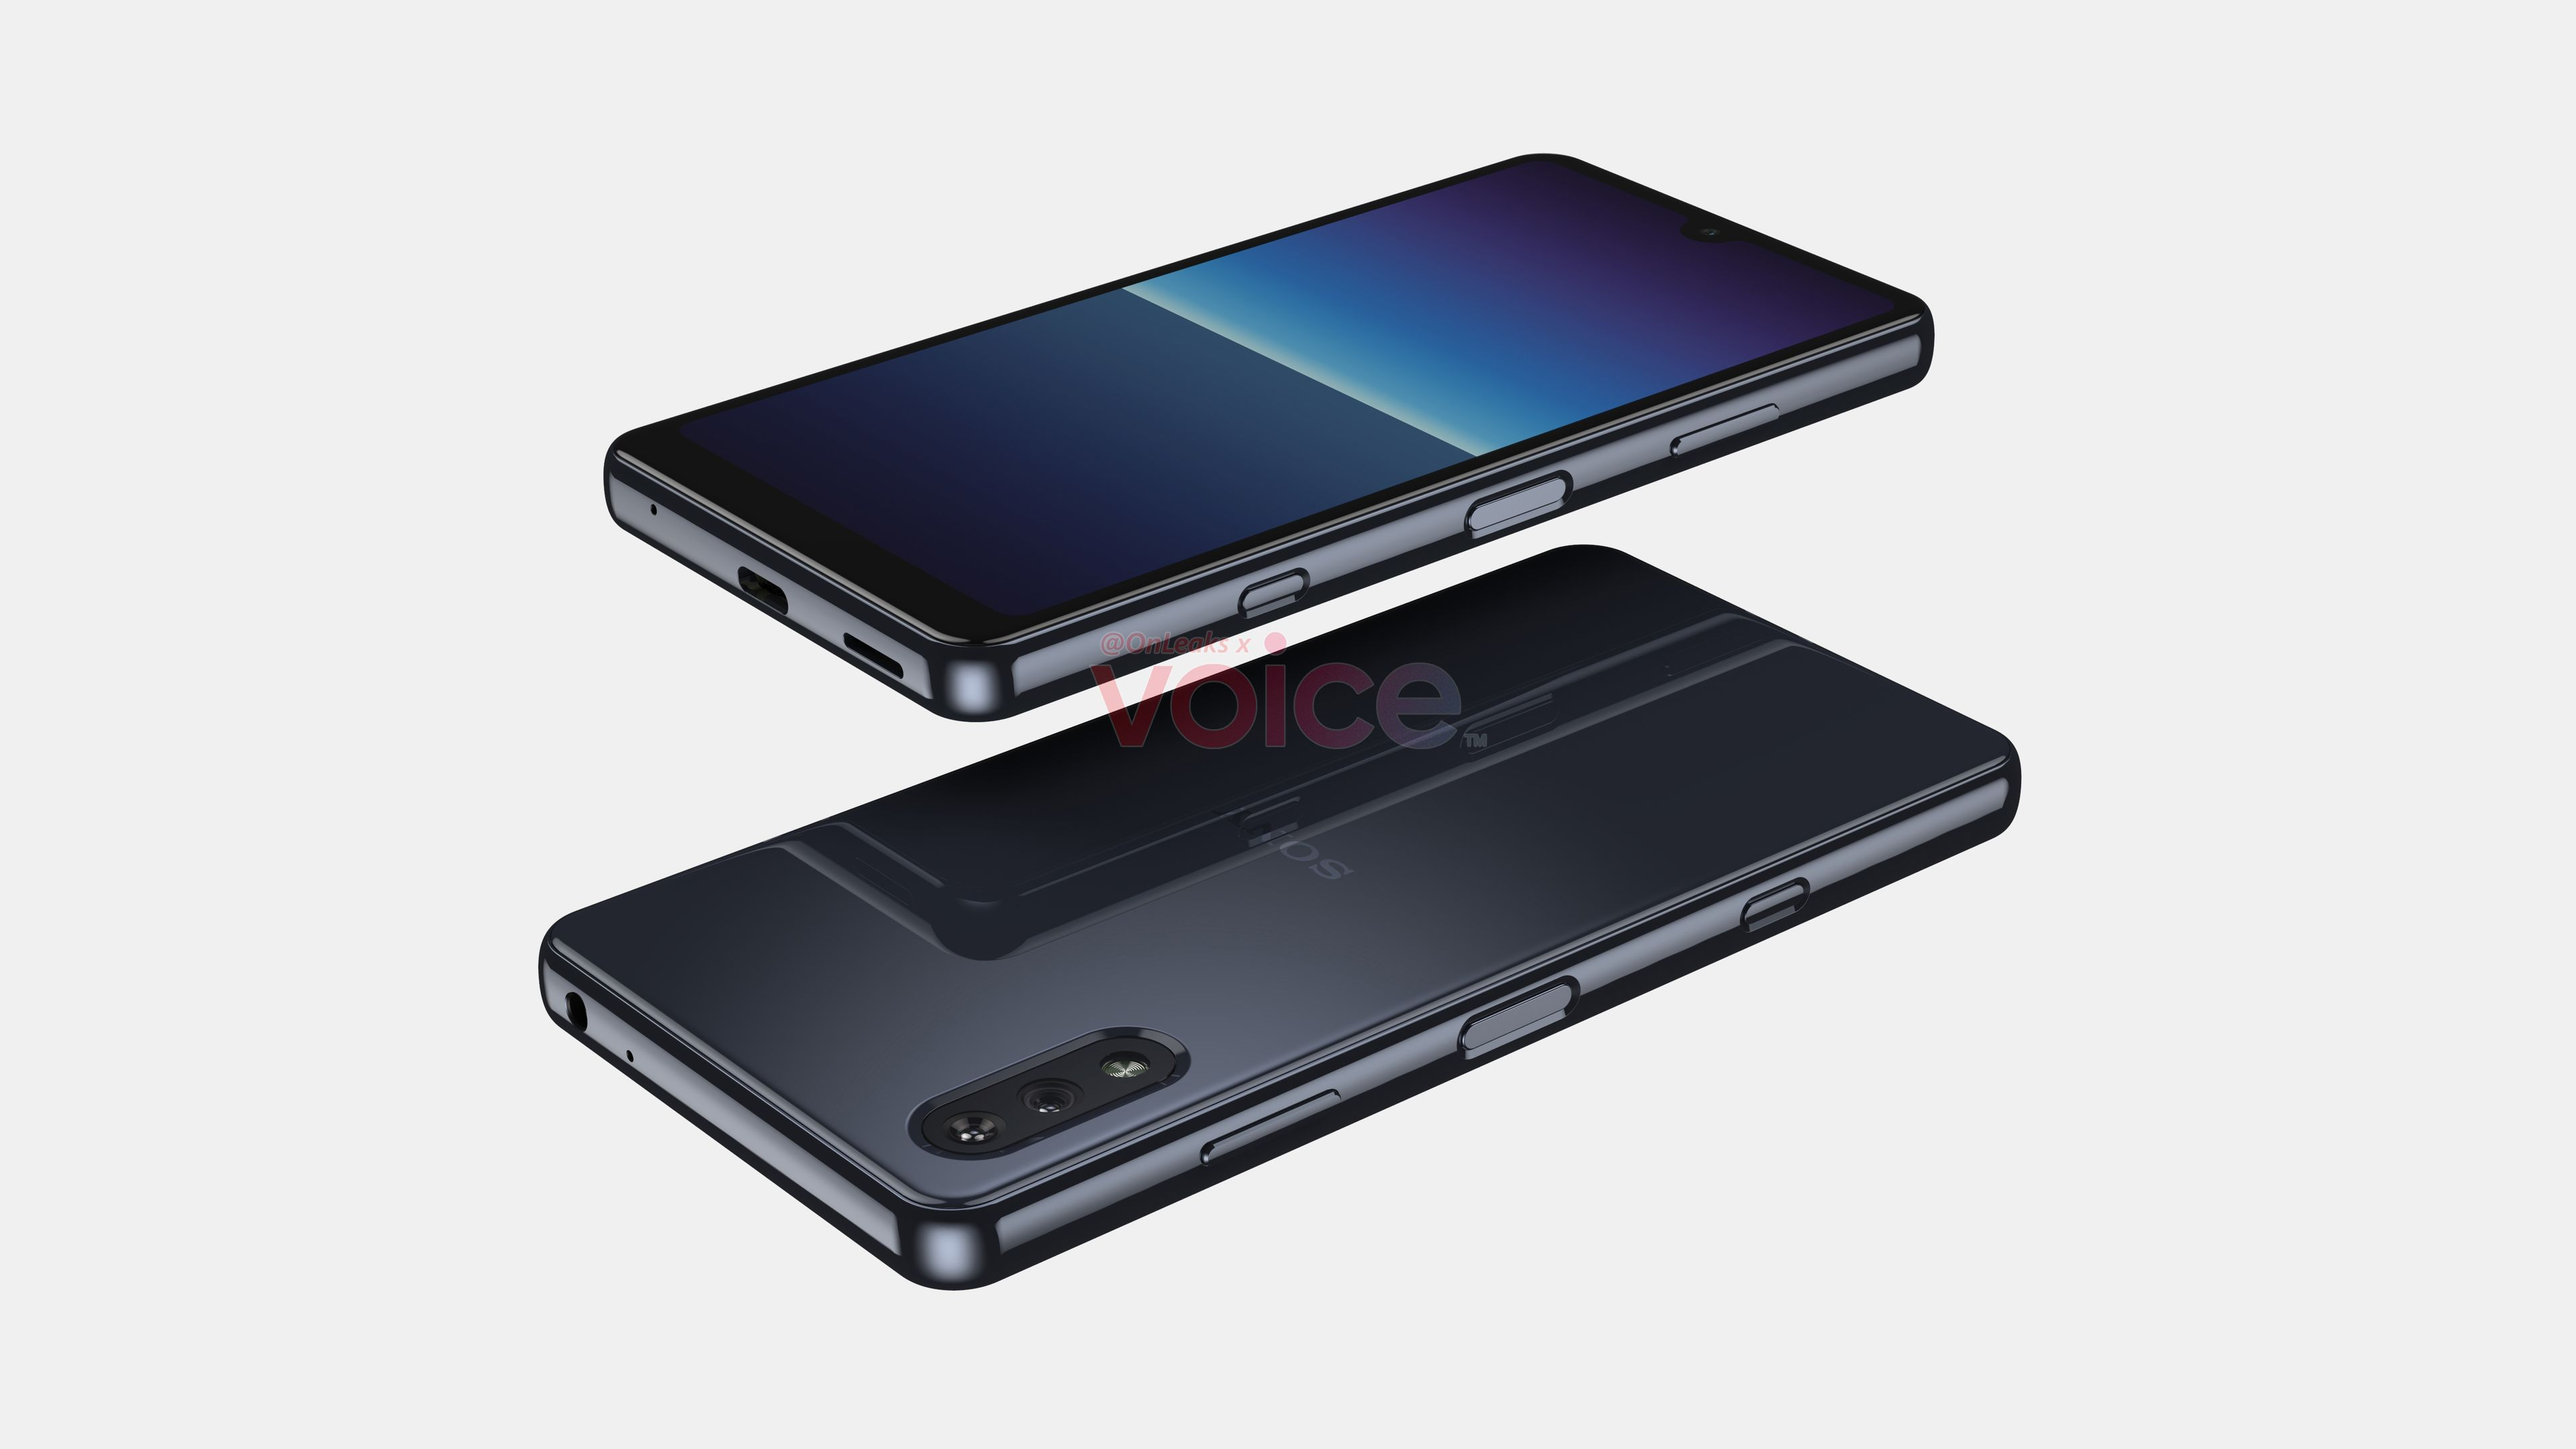 To νέο Sony Xperia Compact βρίσκεται προ των πυλών